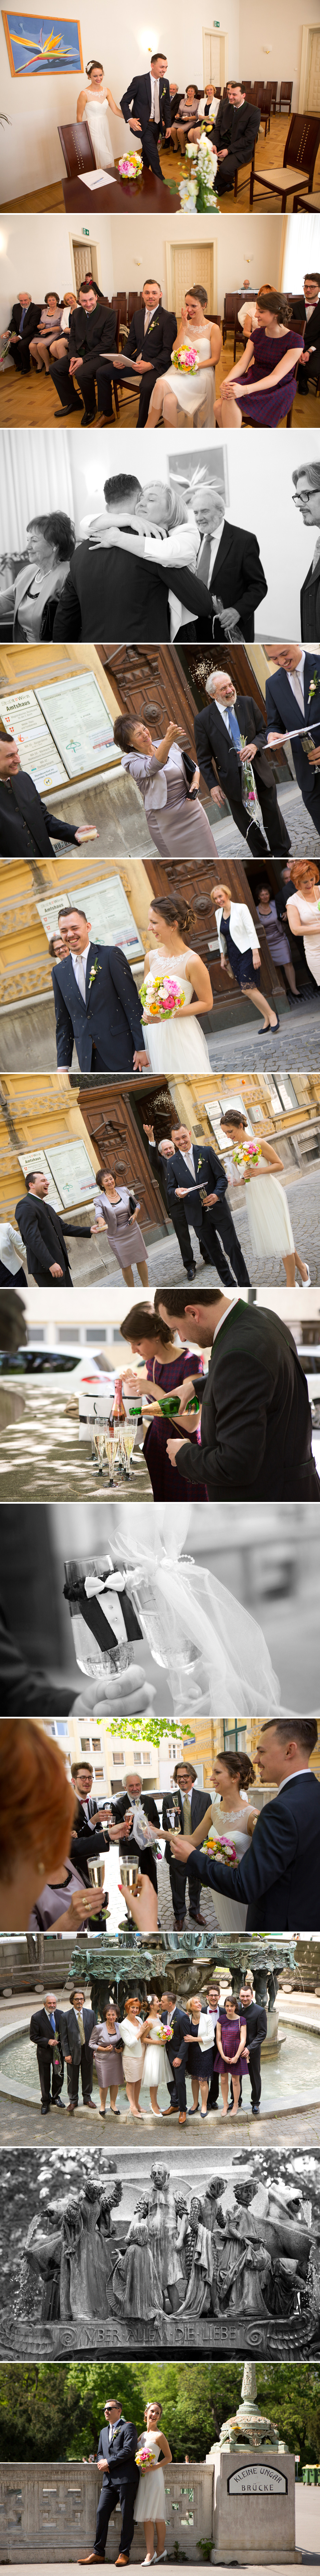 wedding vienna